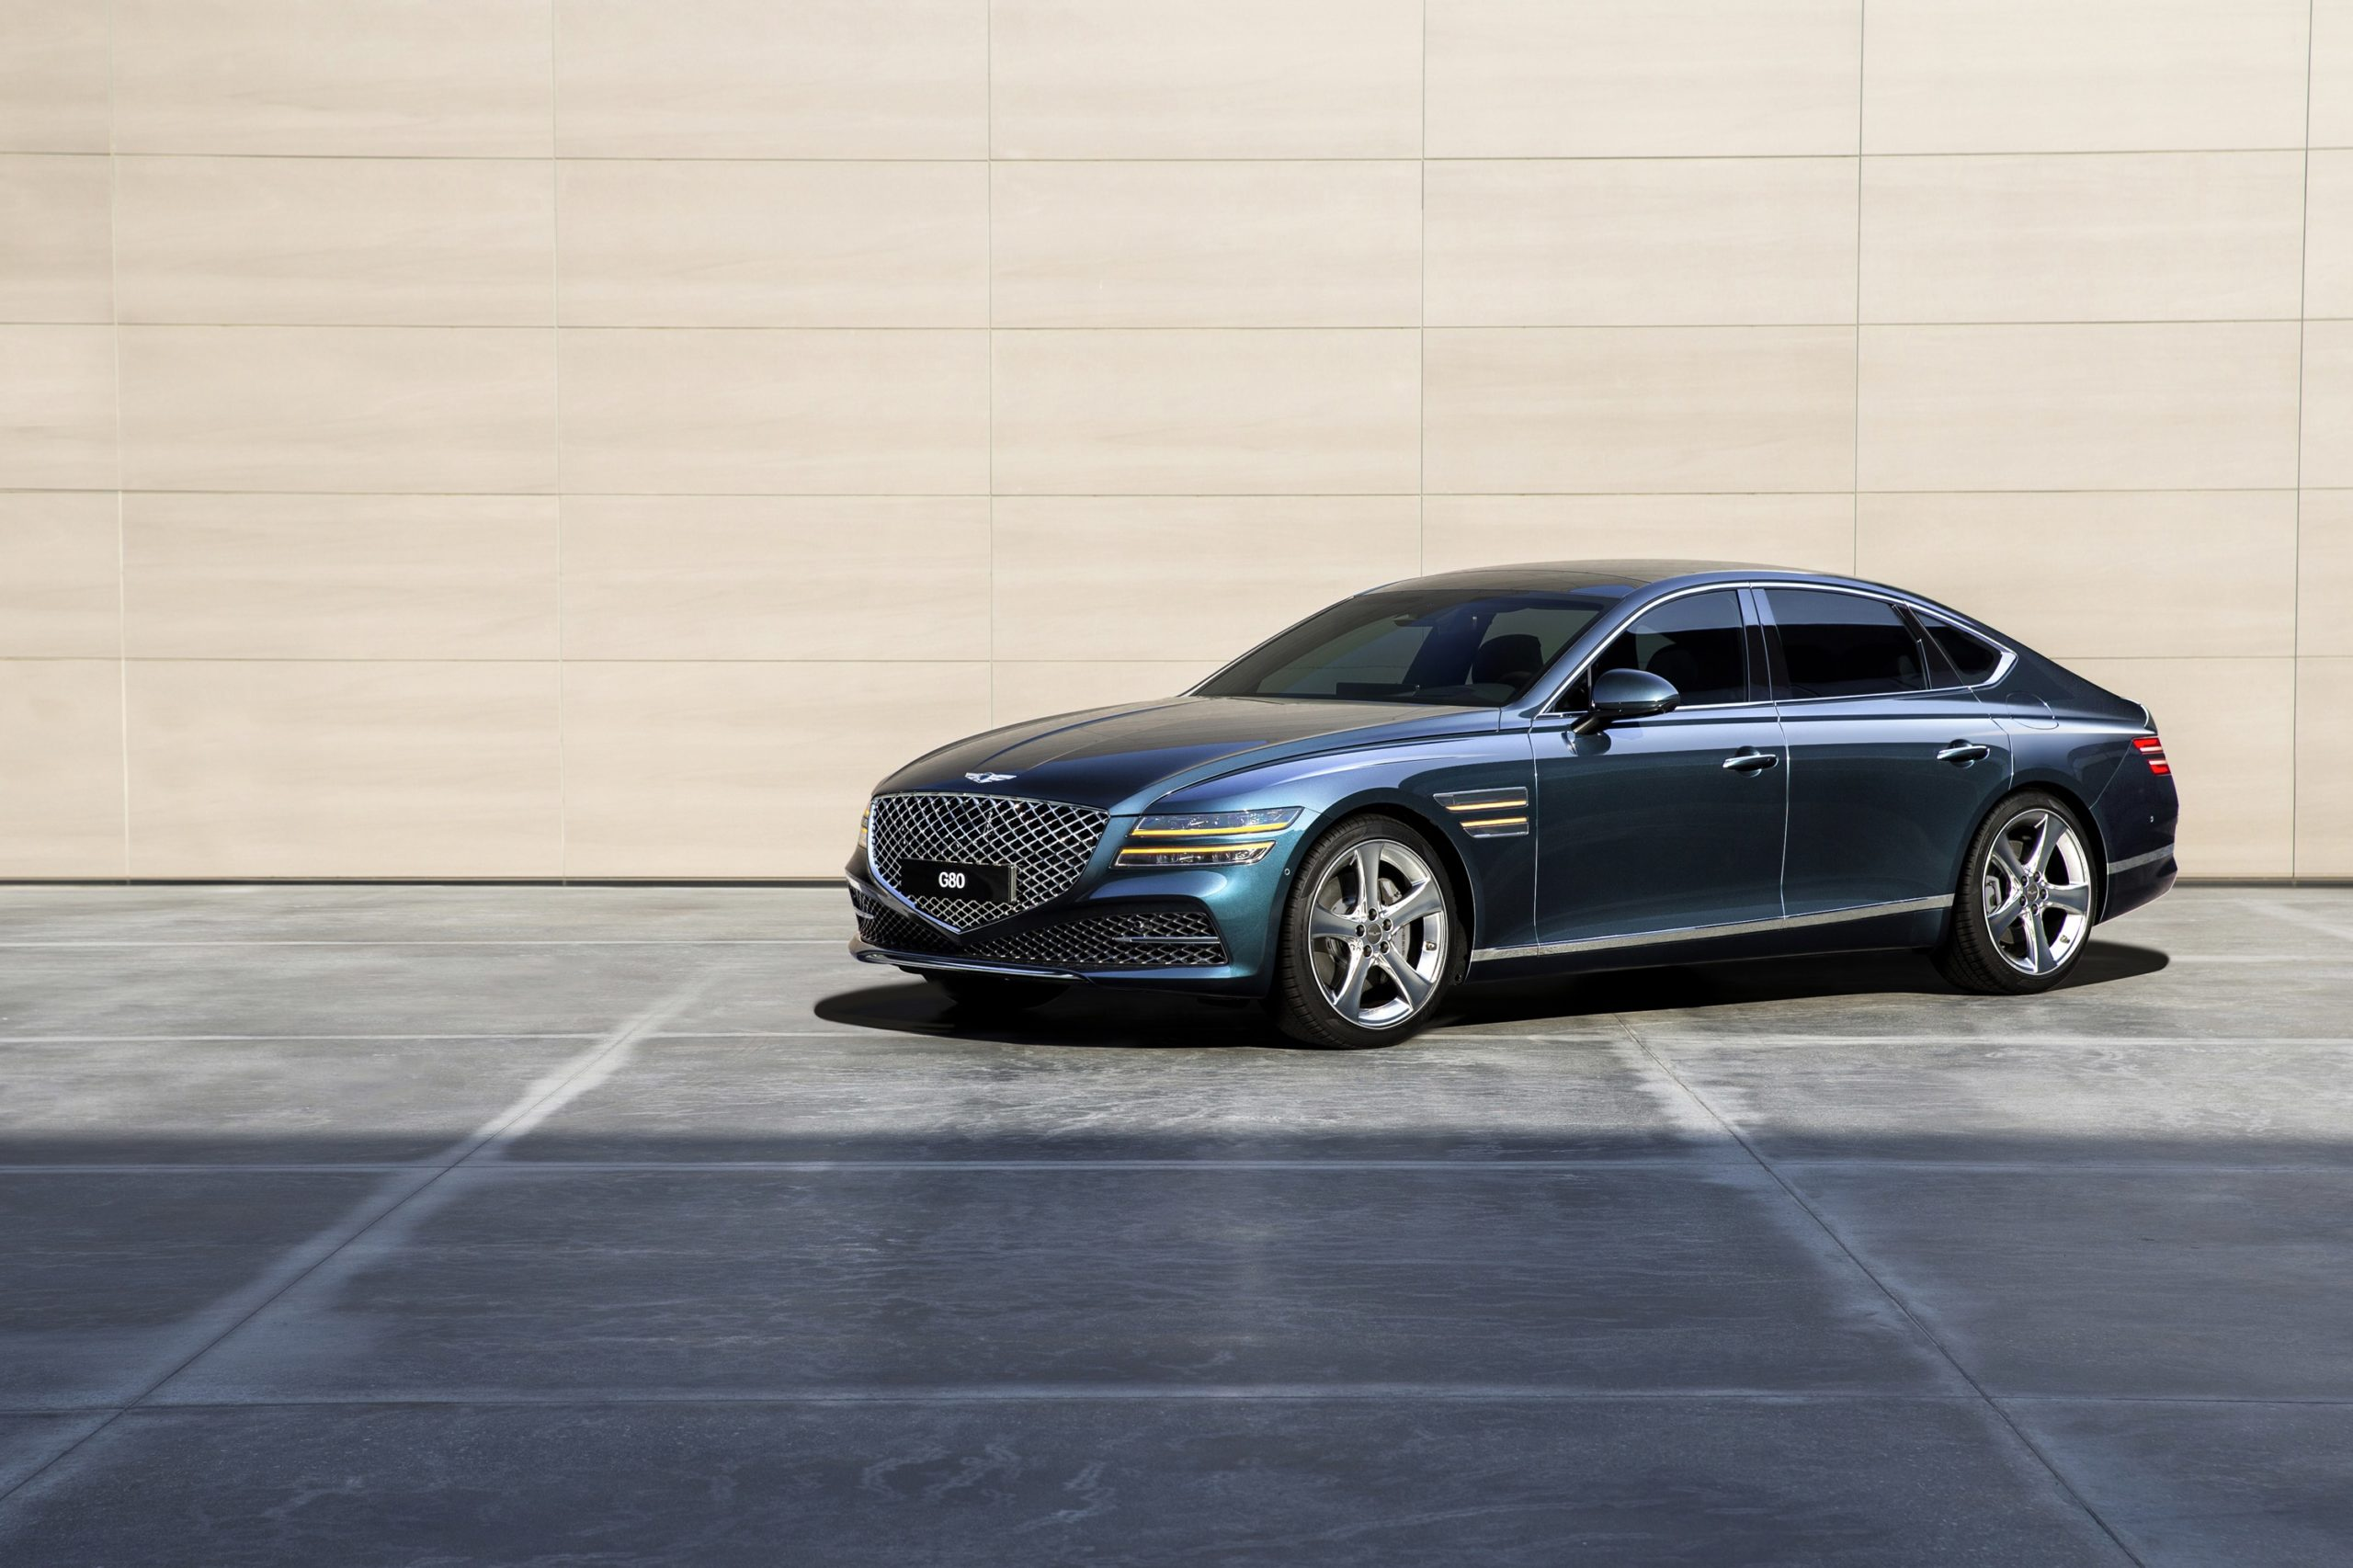 2021 Genesis G80 Price: More Expensive, Yet Still a Bargain